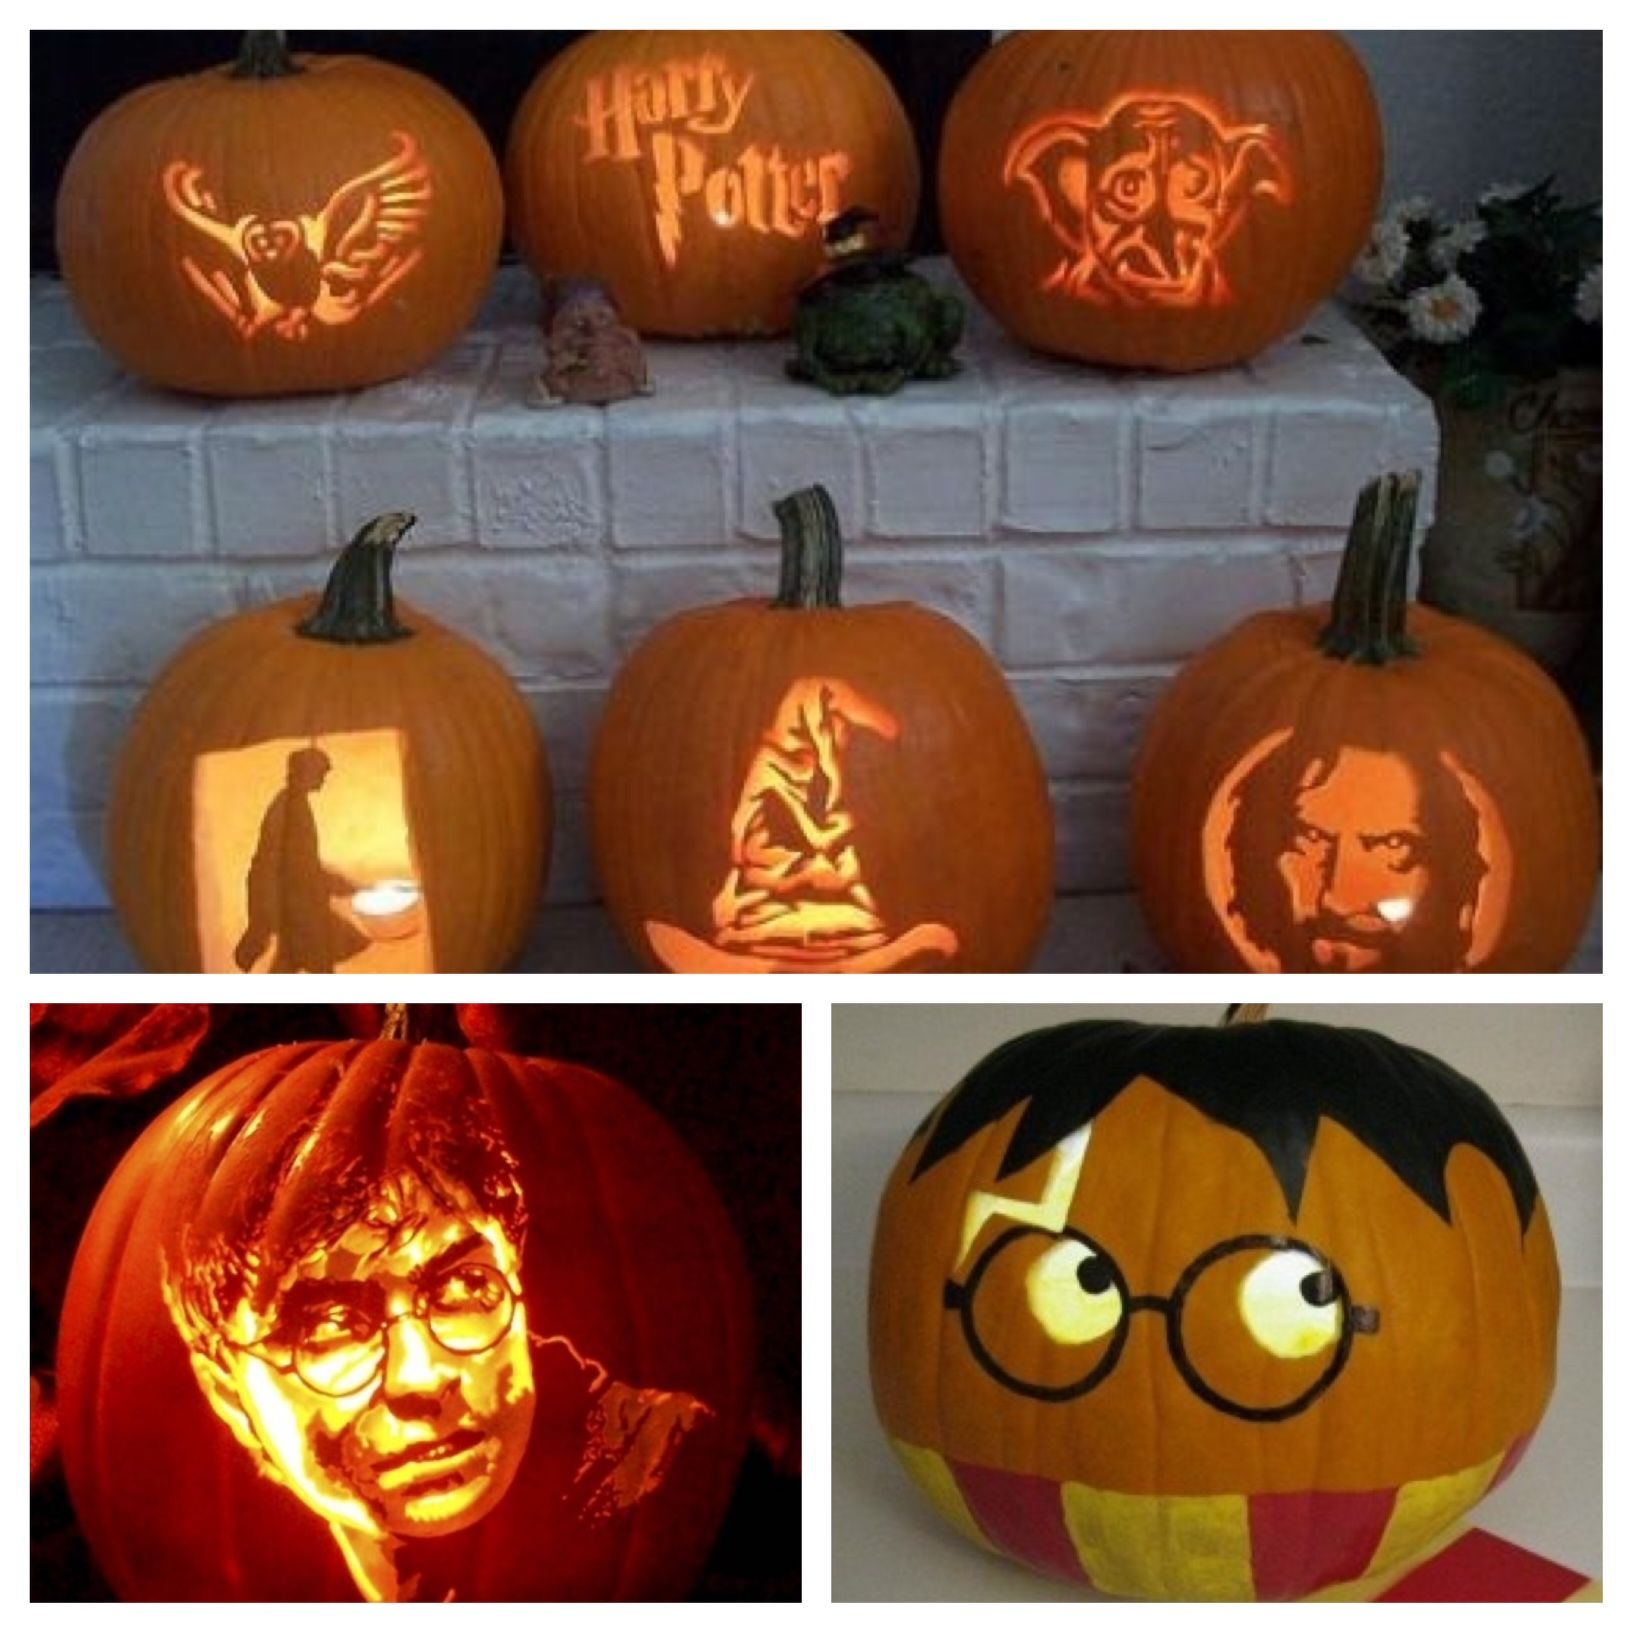 Love these Harry Potter pumpkins the sorting hat is my